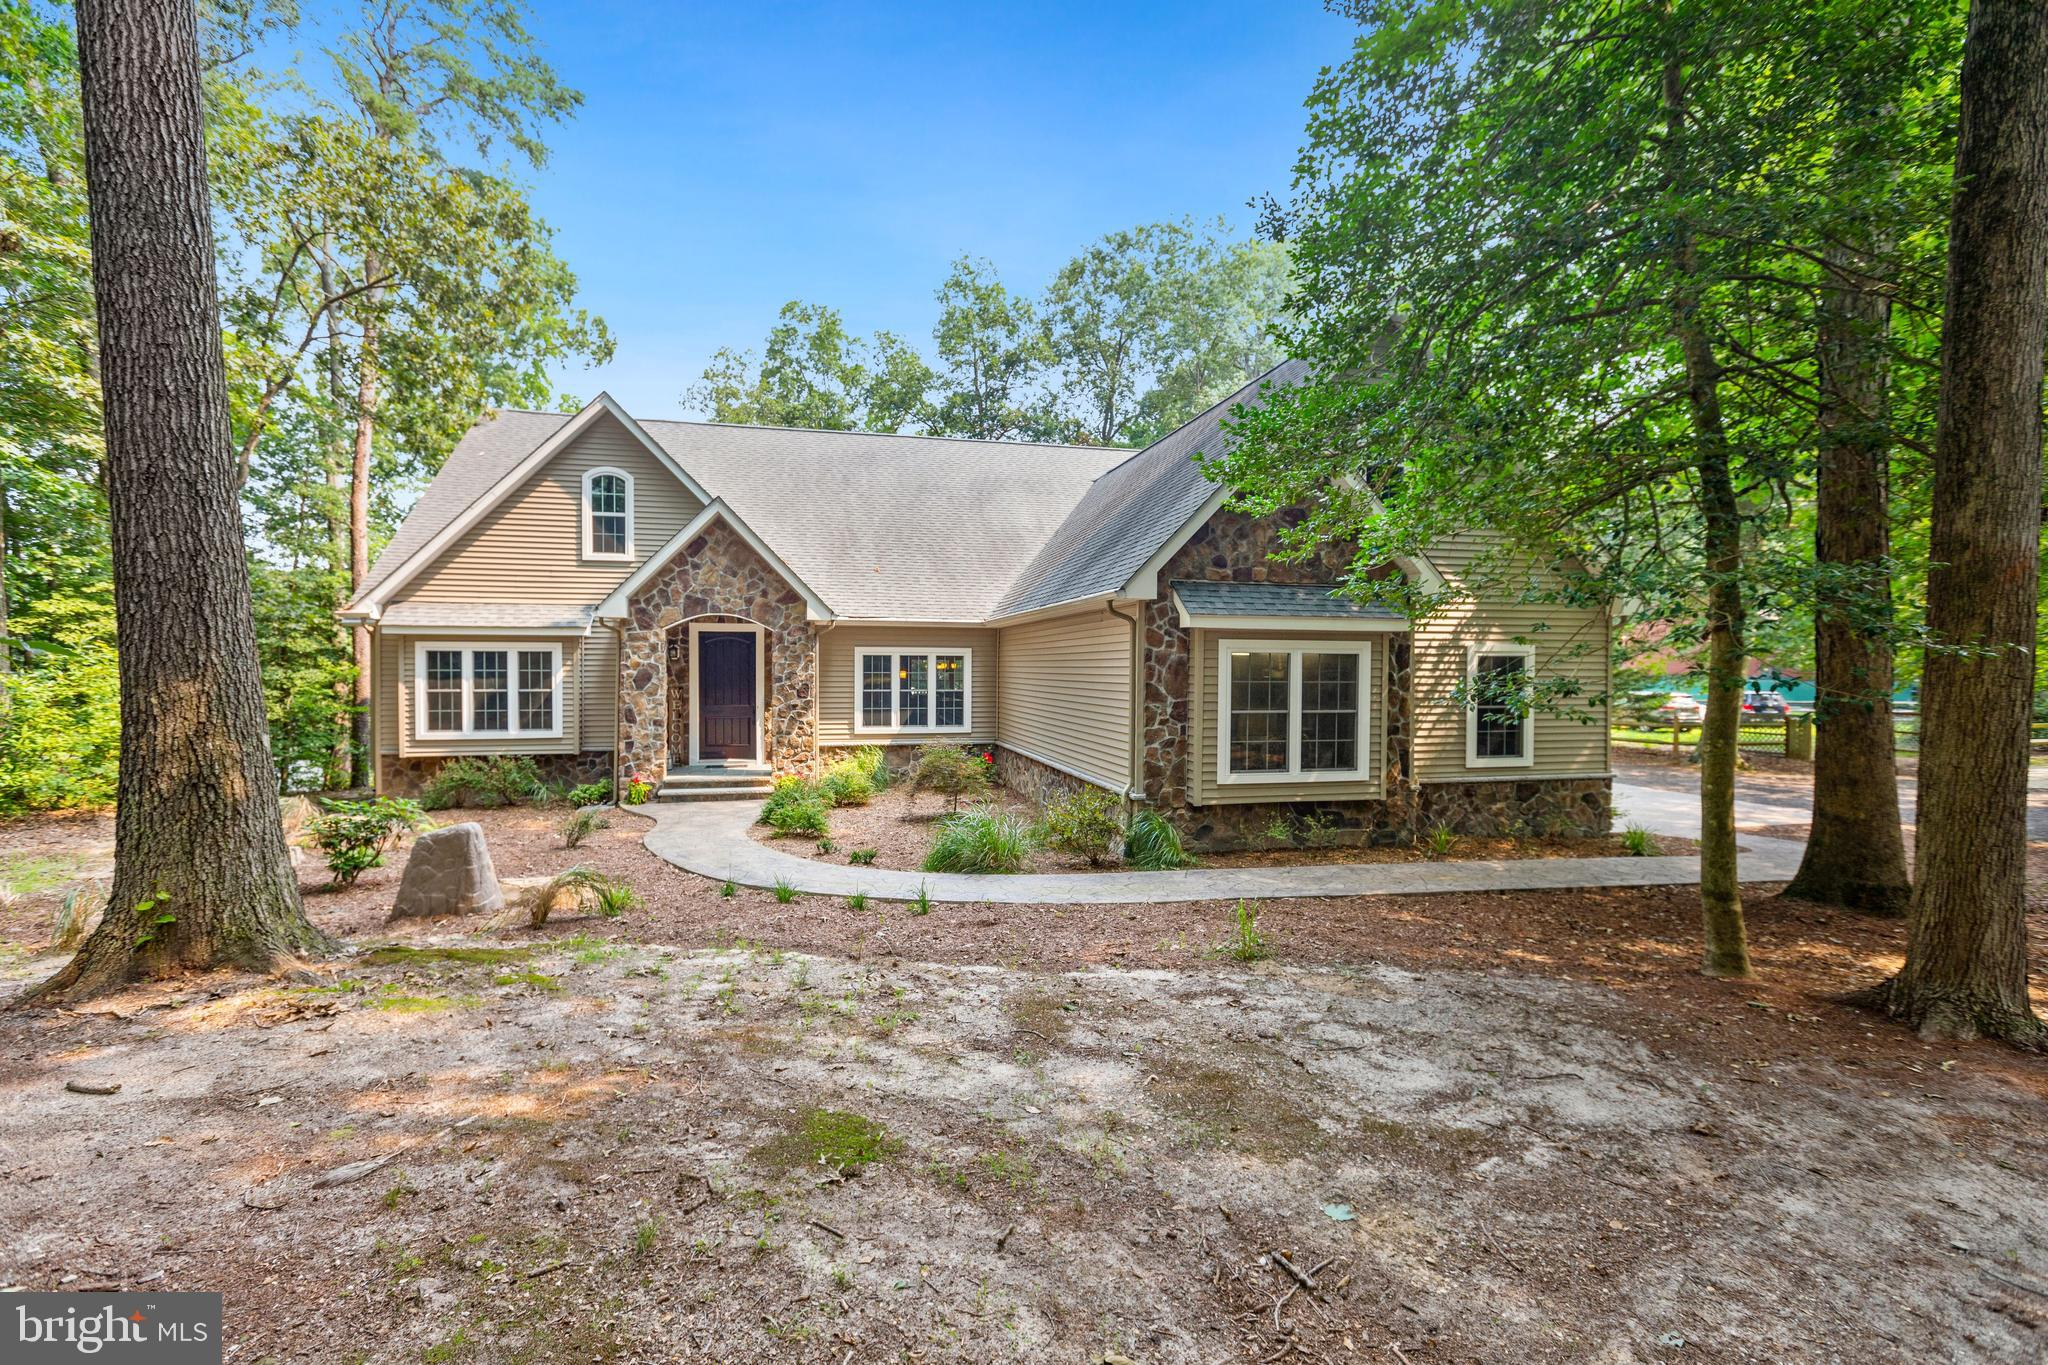 This one-of-a-kind, contemporary, 2-story ranch home is nestled on a private wooded paradise along the banks of the Nanticoke River, and exceeds expectations! From the moment you arrive you are greeted in splendor with lush landscaping and custom hardscaping that leads you to the welcoming covered front porch. This stunning 5-bedroom, 4-bath home is sure to please, boasting premium upgrades throughout the foyer setting the tone for the detailed craftsman finishes, feature lighting, perfectly planned spaces, and designer touches that you will find throughout. Inside, the foyer graciously opens to exquisite interior spaces, designed for easy-living and grand-scale entertaining beginning with the elegant two-story living room with a floor to ceiling raised hearth fireplace, handsomely encased in stone, and stacked window views of the back deck and backyard oasis, and the stunning Nanticoke River! The gourmet kitchen is appointed with lovely sienna colored cabinetry, contrasted by light granite counters, a suite of stainless-steel appliances, a bi-level center island with breakfast bar, and highlighted with featured, recessed and under cabinet lighting. The kitchen is enhanced by a thoughtful floor plan that includes a very generous walk-in pantry, and is sided by a formal dining room, and a breakfast dining area with a walk-out to the deck. The main level owner's suite features a tray ceiling with custom fan, a wall of picture window views of the river, private access to the deck, and offers 2 sizable walk-in closets. The deluxe luxury ensuite offers two vanities separated by a stack of custom cabinets, a free-standing spa-like tub, grand-scale tile and glass enclosed shower stall, and a private water closet. Off the foyer on the main level, French doors open to the well-proportioned office with custom built-ins perfect for inspired work at home, but also has a closet and shares a full bath, so it could be another bedroom with ensuite on the main level. Two additional 